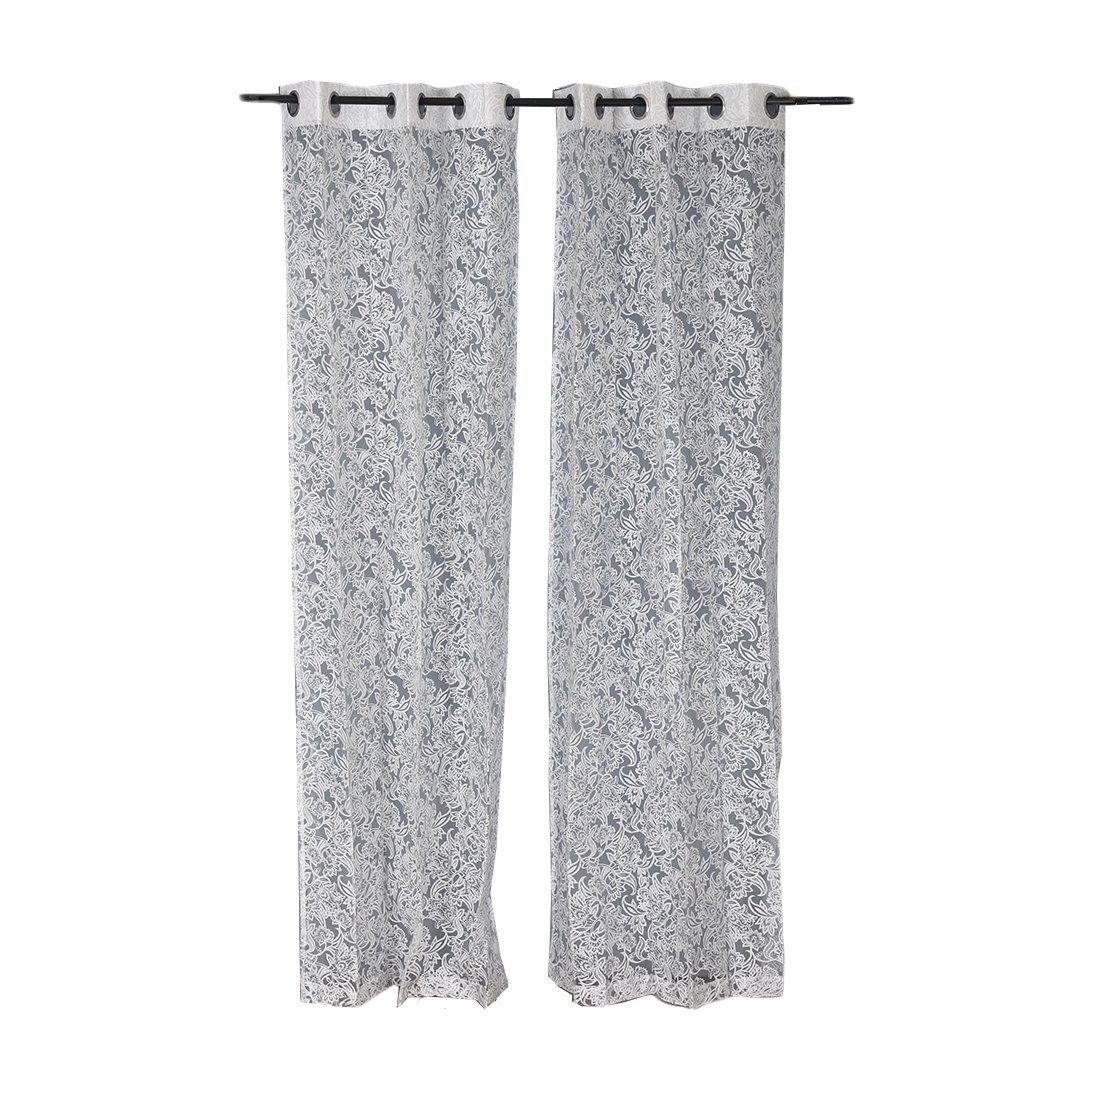 Amour Cotton Polyester Sheer Curtains in Silver Colour by Living Essence